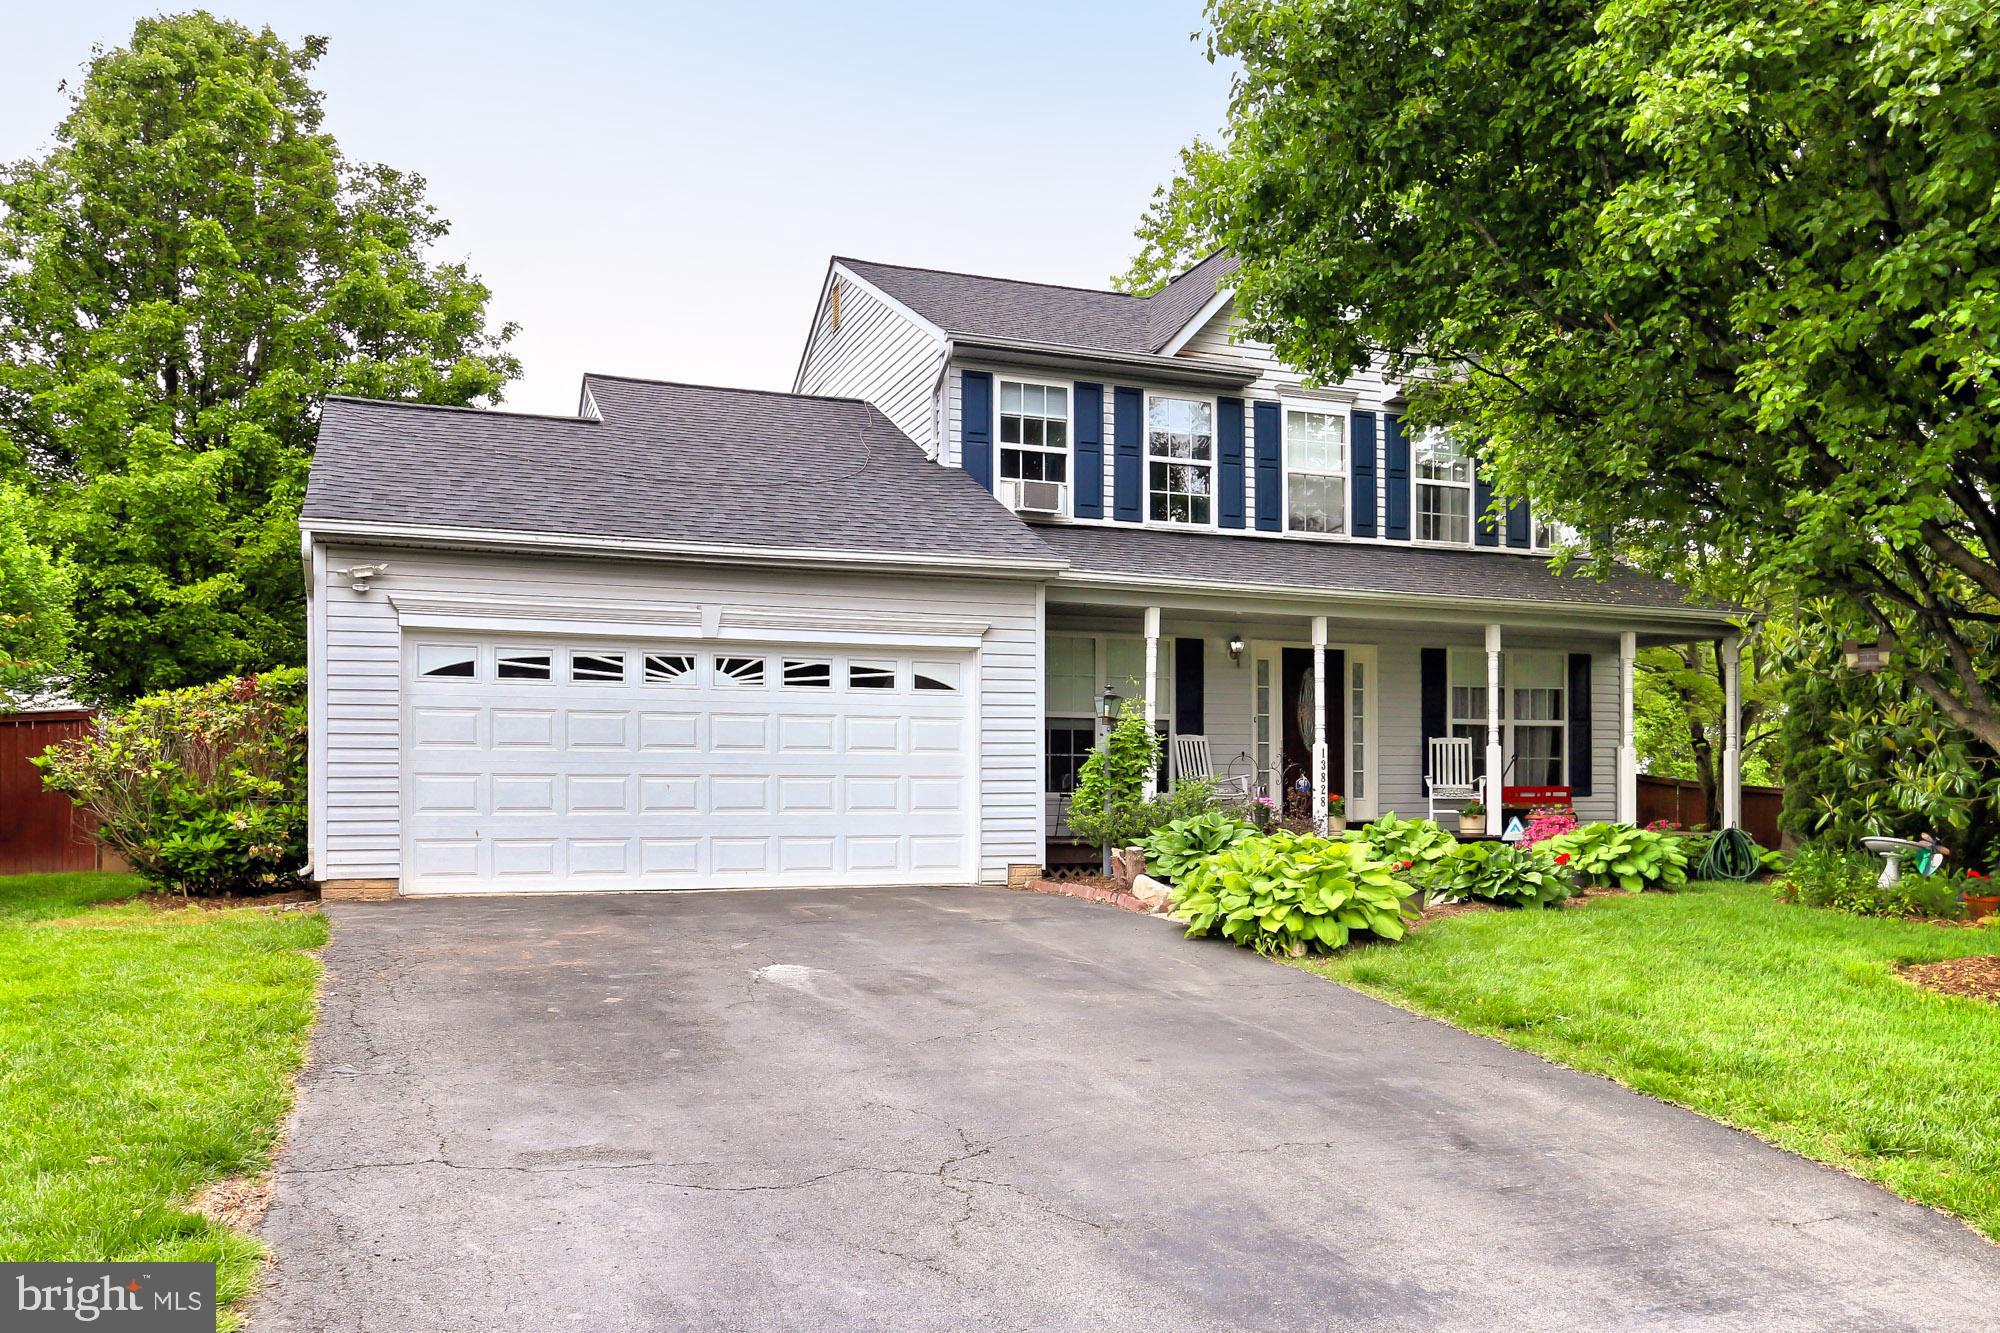 You always wanted to live on a cul de sac- peaceful and quiet-  no cars rushing by- safe for the kids and dog to play in the street out front- well here is your chance- Nicely updated Colonial with inviting front porch.  Enter into the distinctive hardwood entry and discover that the home boasts hardwoods thru-out main level but for the living room. Step over to the living room with crown molding and bright double windows overlooking the front porch. Then come thru the separate dining room with of course hardwood flooring.  Yes the sparking updated kitchen is next with very recent Samsung stainless steel fridge, six burner gas stove & built in microwave. New granite counters (2017).  Don't miss the pantry closet or the handsome tile backsplash.  There's plenty of room to put a table or you can pull up some stools to the large counter like the current Owner.  Adjacent to the kitchen is the spacious family room with gas fireplace.  Other notable parts of the main level include a separate washer and dryer area with 2018 Samsung high quality front loaders.  Also there is a convenient updated half bath off the hallway with pedestal sink.  Moving upstairs to the master bedroom suite that is nice sized and boasts his and her walk-in closets.   Then check out the newly remodeled luxury master bath.  Everything in the bathroom has been upgraded except the tub.  This bathroom boasts double sink, separate tub and shower, ceramic tile flooring and shower/tub surround.  Two additional bedrooms upstairs away from the master and a hallway full bath with ceramic tile.  You may have noticed that we have all new plumbing fixtures thru-out the home.  Head down the stairs to the lower level recreation/game room.   The bar in the recessed area will convey.  Truly convenient full bath with shower off the recreation room.  Don't miss the den/studio with built-ins.  With the sun out here let's look around the backyard.  Good sized wood deck, expansive brick patio, totally fenced rear yard.